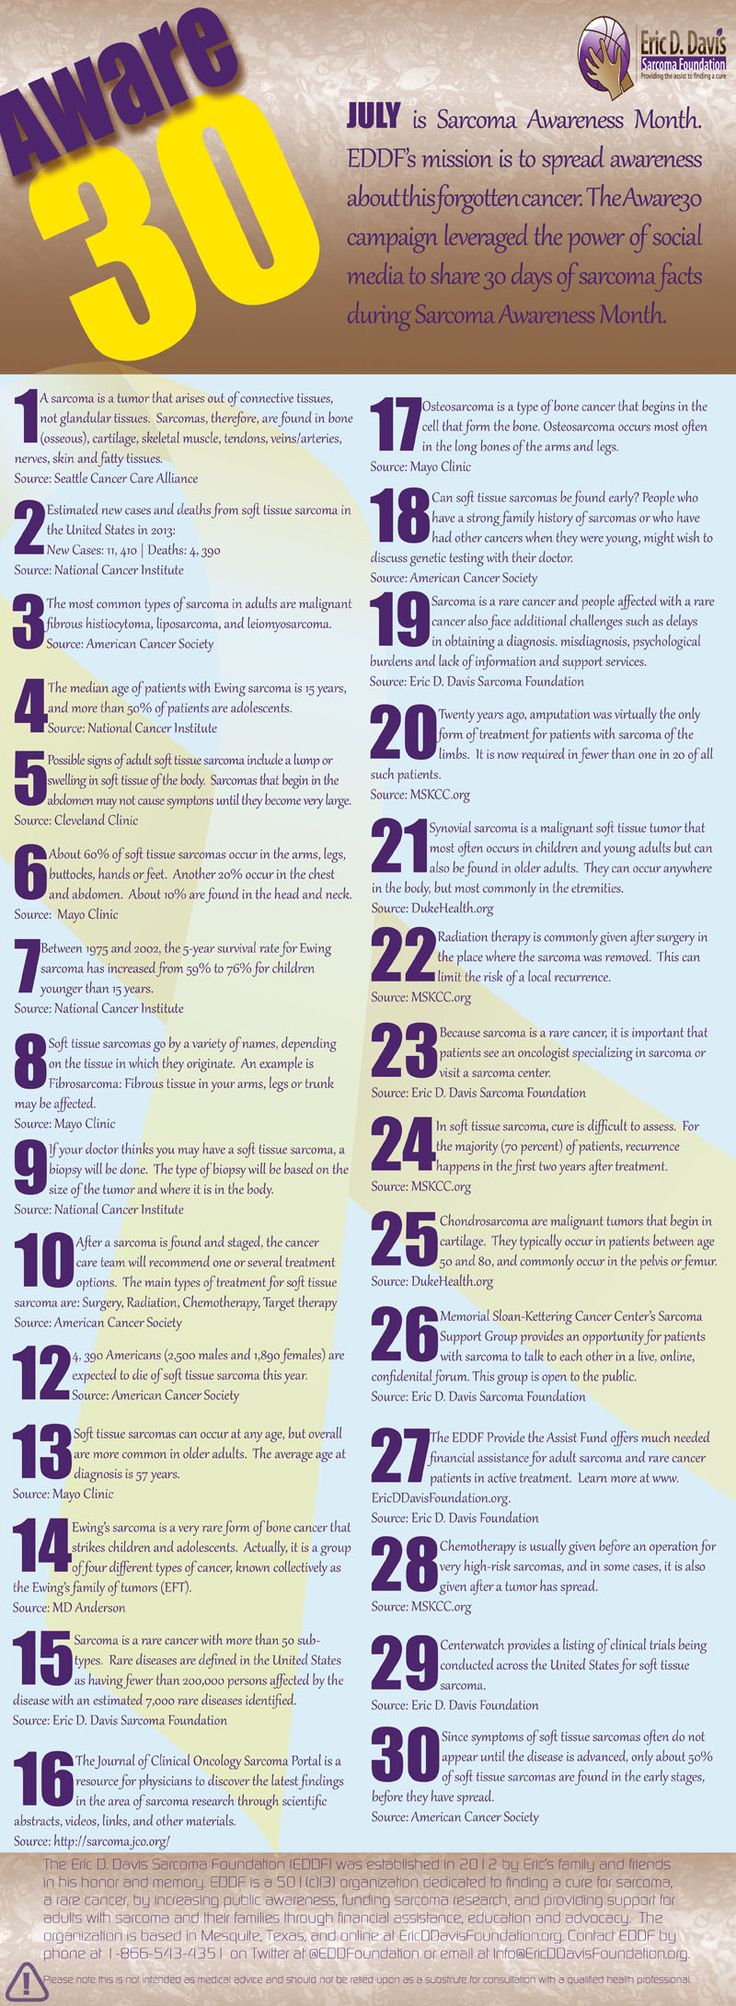 #Aware30 finale for July 31st! Our infographic features 30 days of #sarcoma and rare cancer facts and stats.